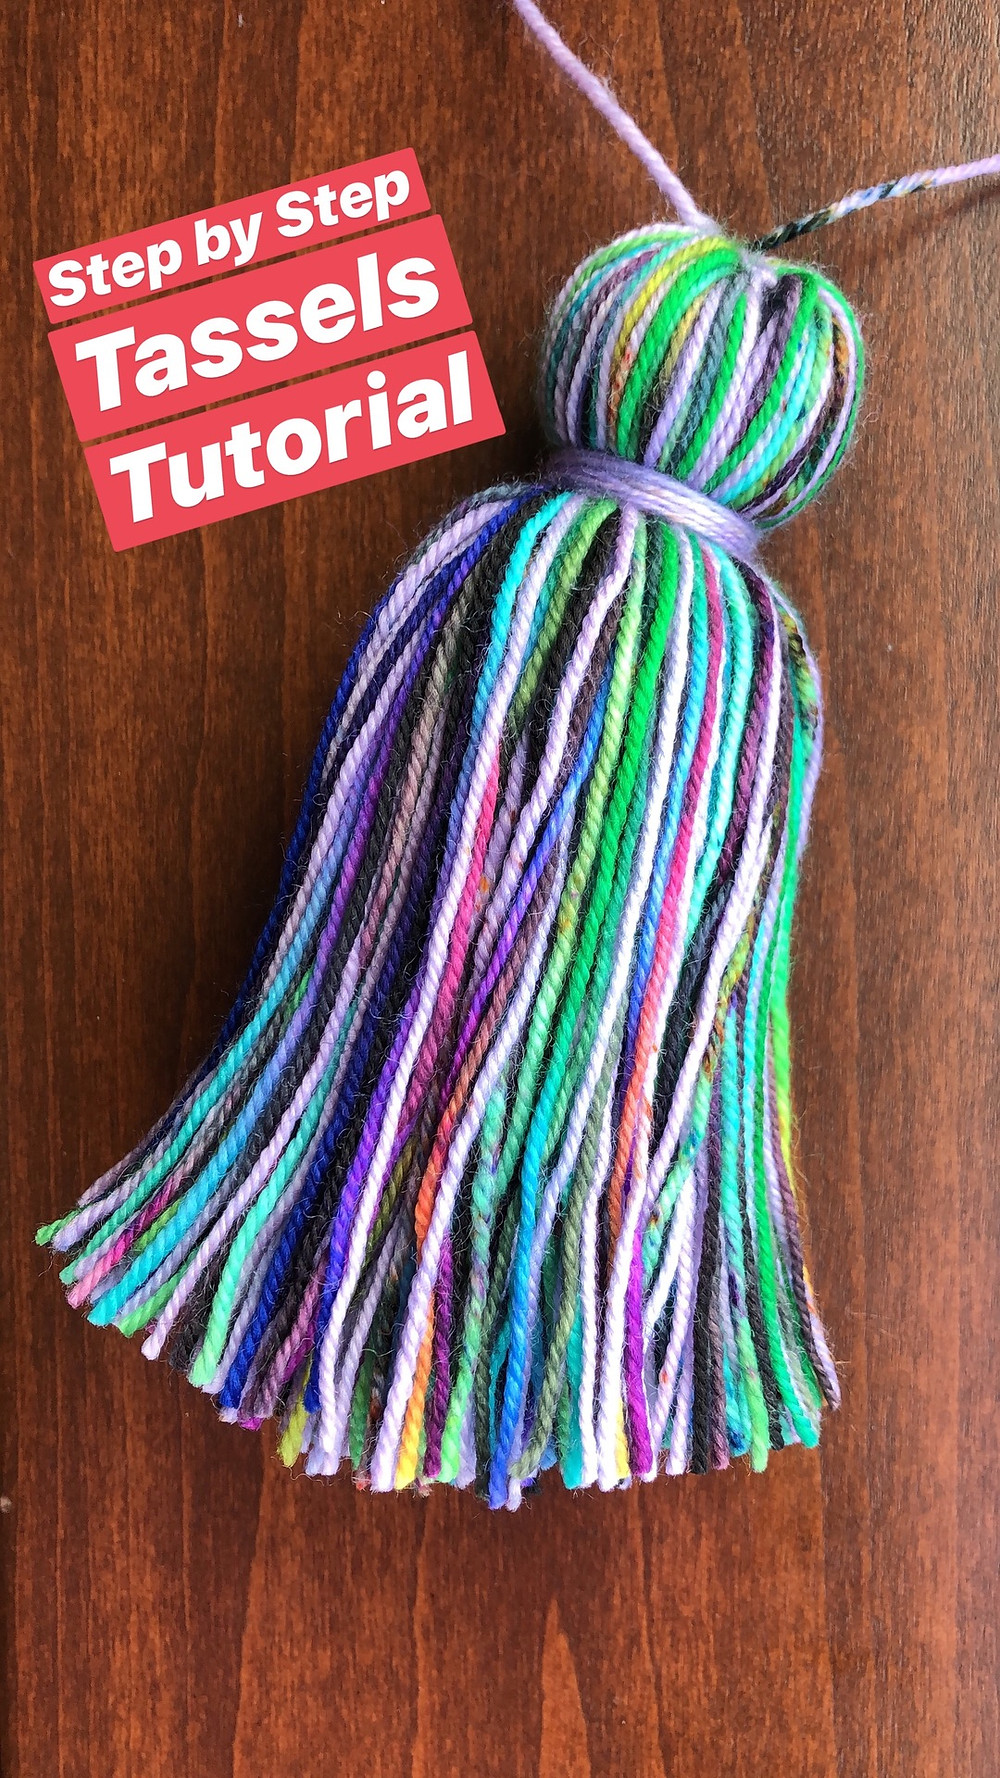 Step by Step Tassels Tutorial